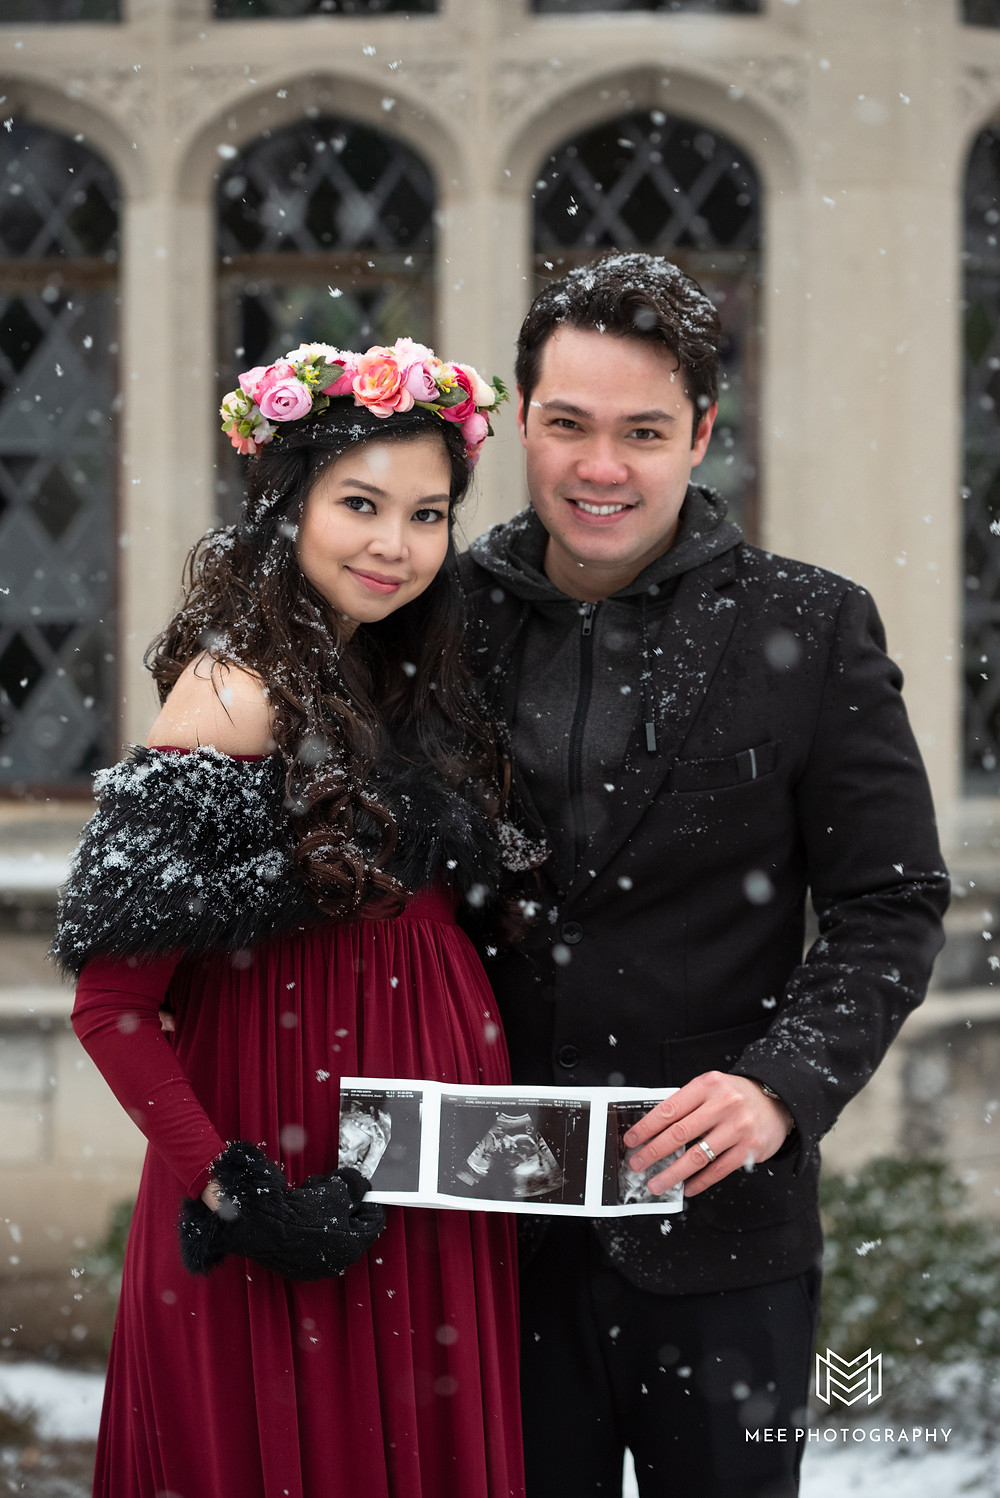 Couple holding ultrasound photos  during their maternity session at Hartwood Acres Park near Pittsburgh